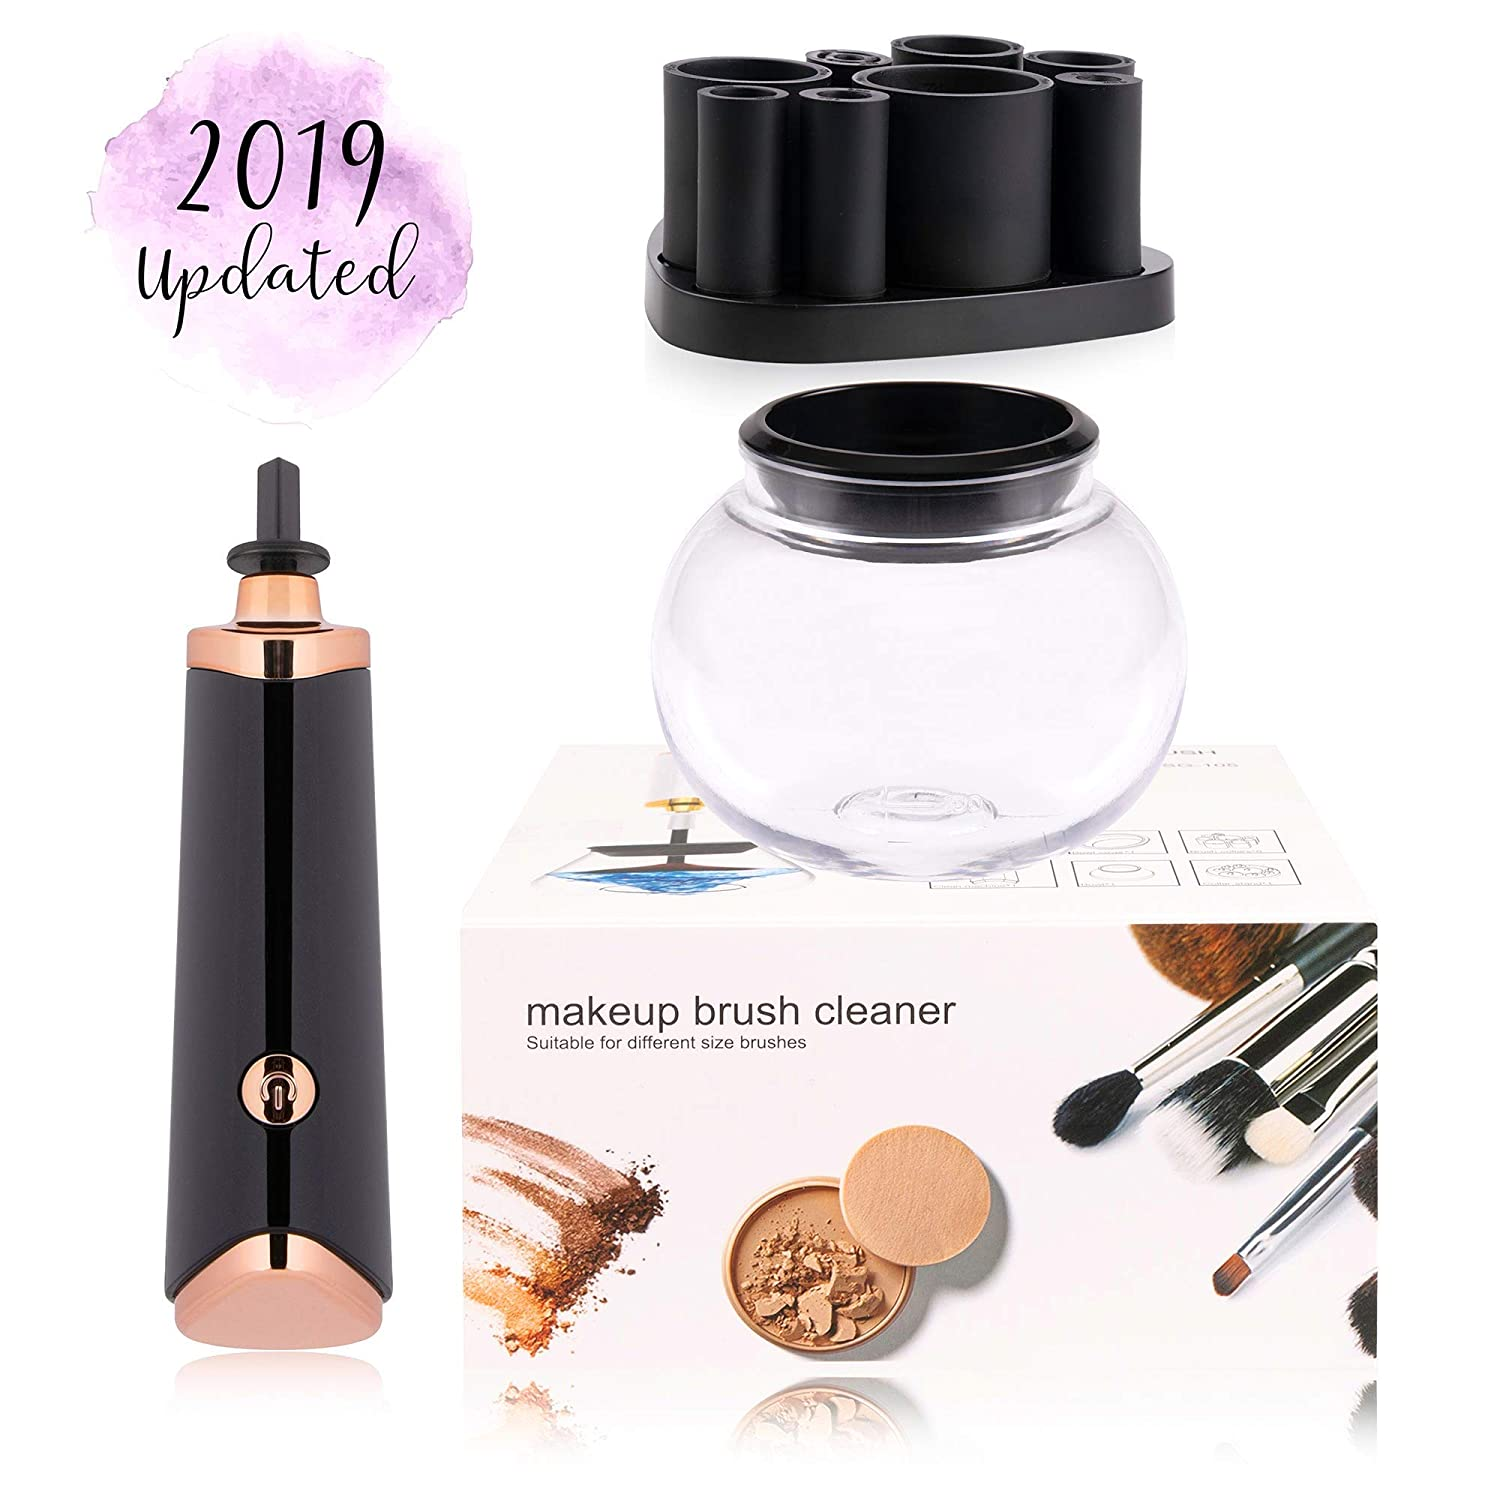 Clara Beauty - Electric Makeup Brush Cleaner Kit - 2019 Updated Version - Automatically Cleans Cosmetic Make Up Brushes in 30 Seconds, Spinner Dries Brushes Almost Instantly. Fits 99% of Brushes